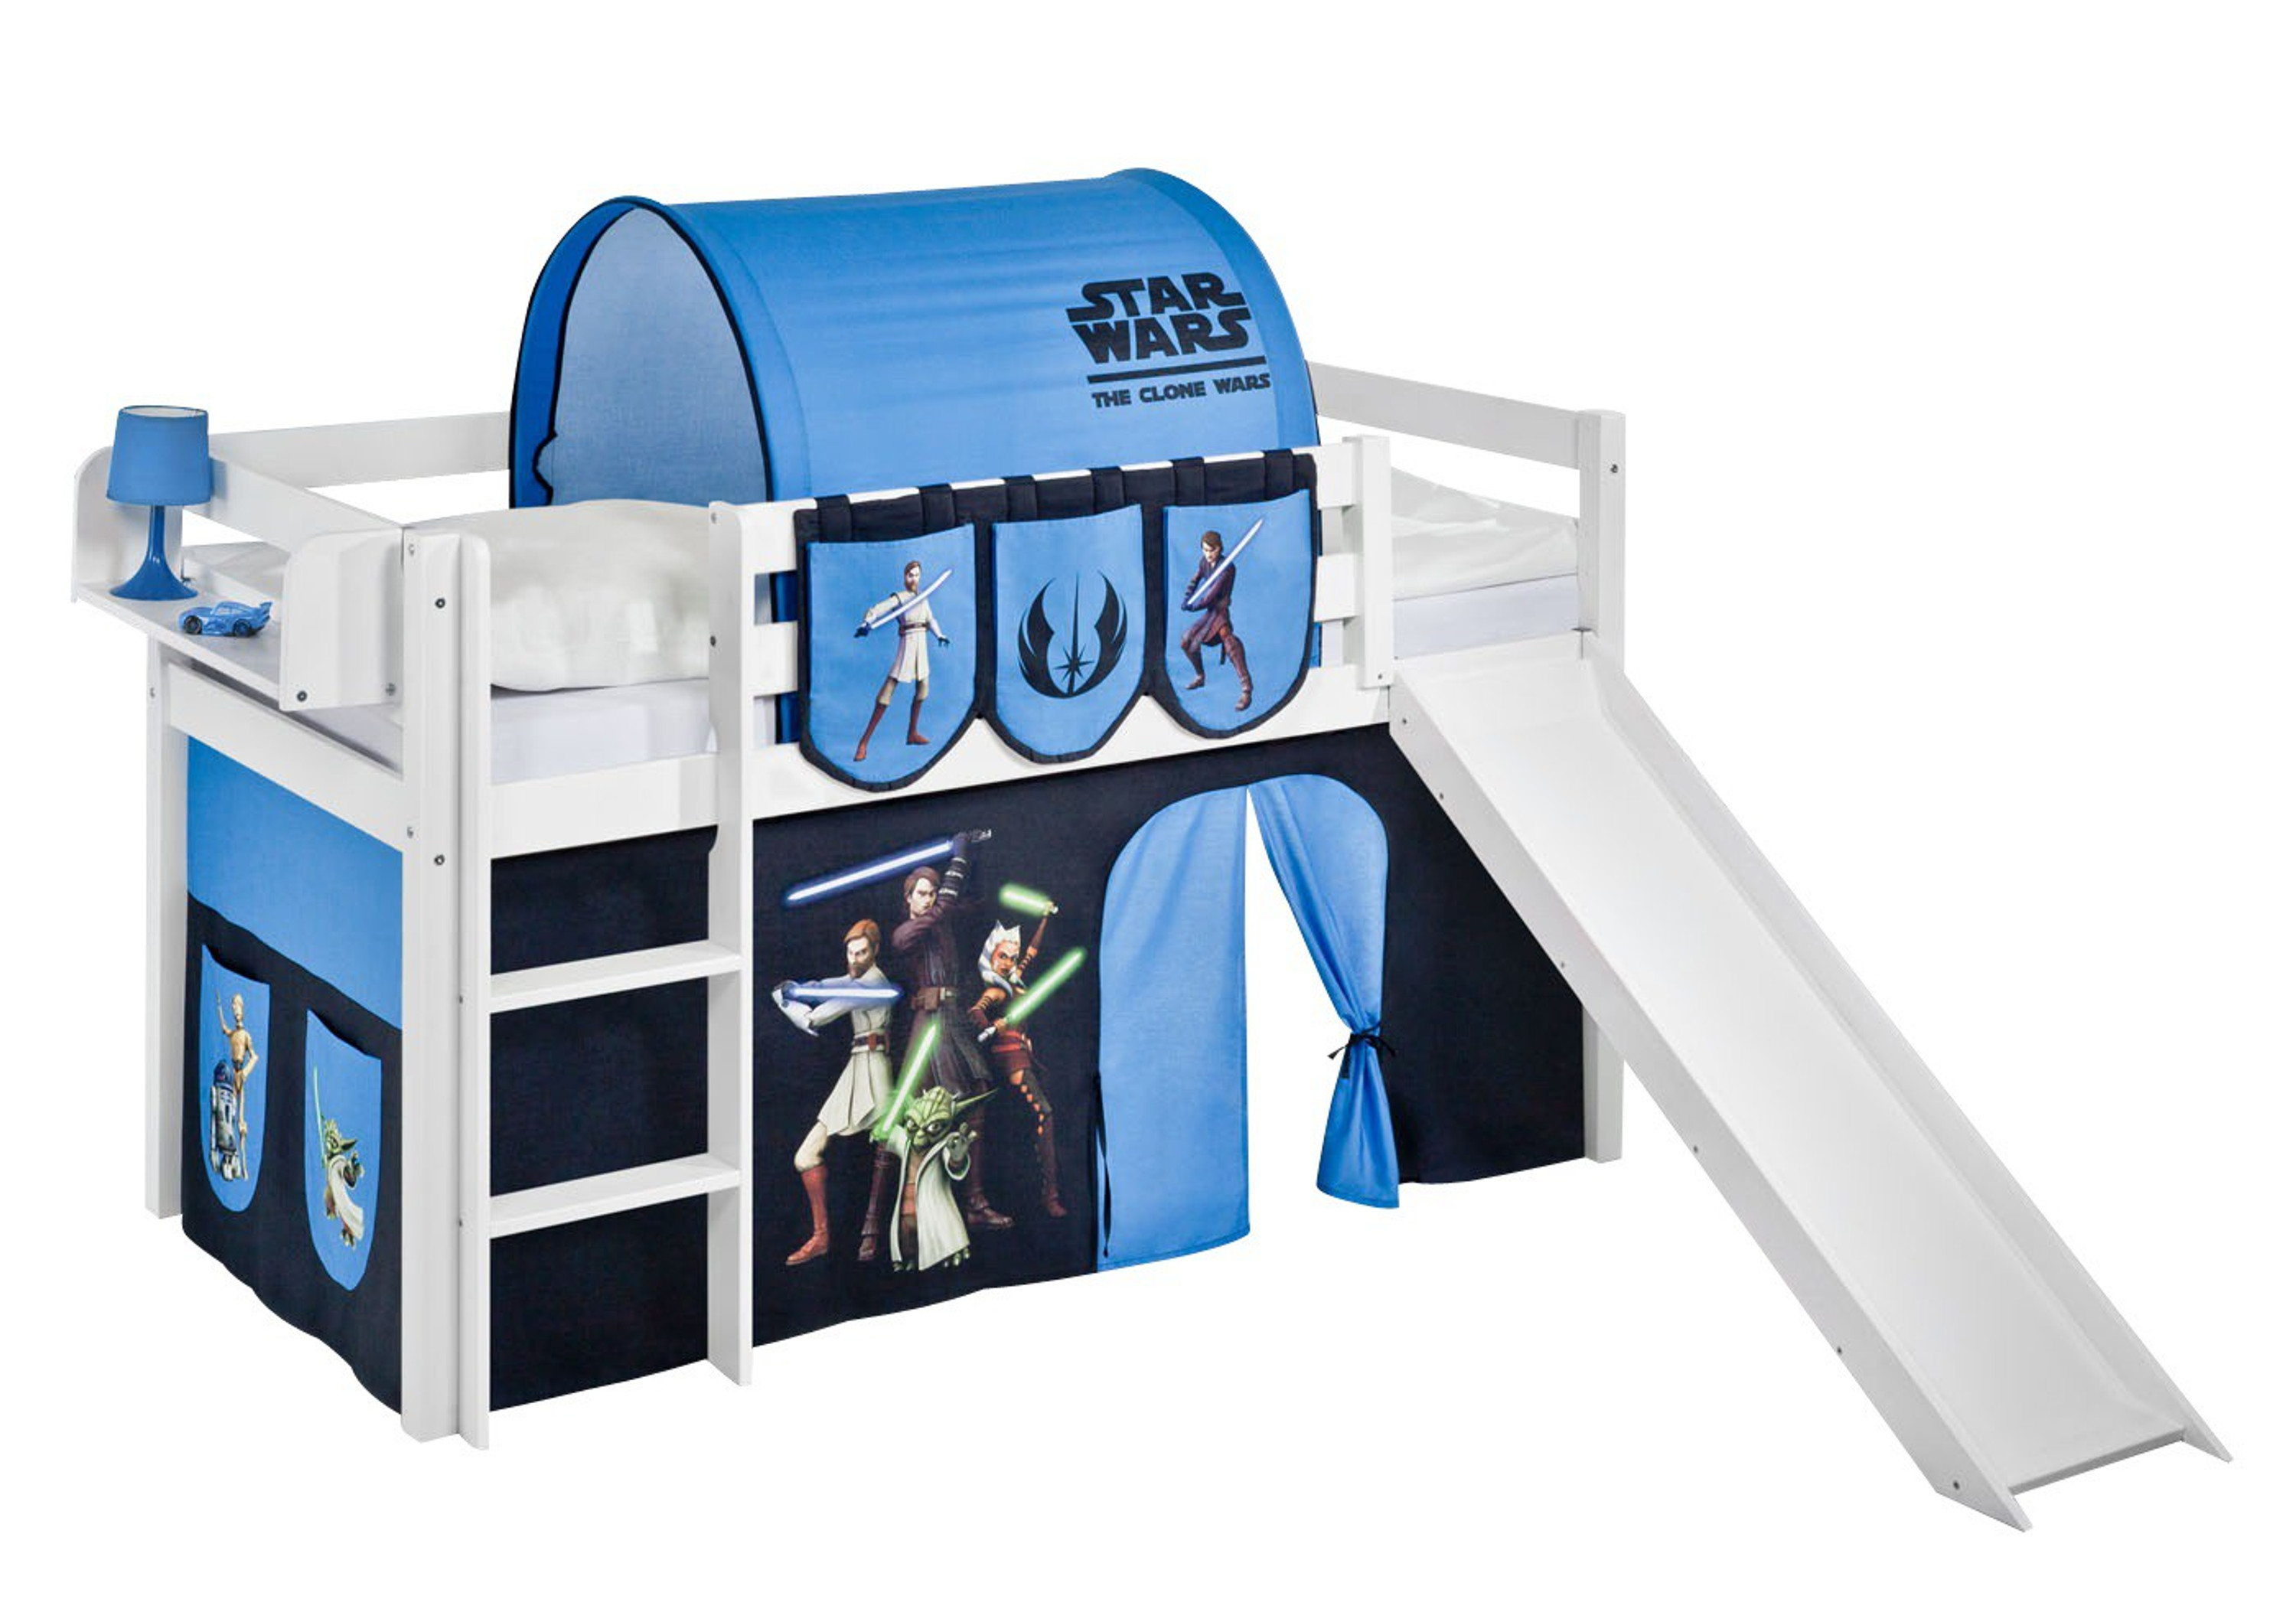 spielbett star wars the clone wars wei mit rutsche und vorhang jelle m bel baby. Black Bedroom Furniture Sets. Home Design Ideas